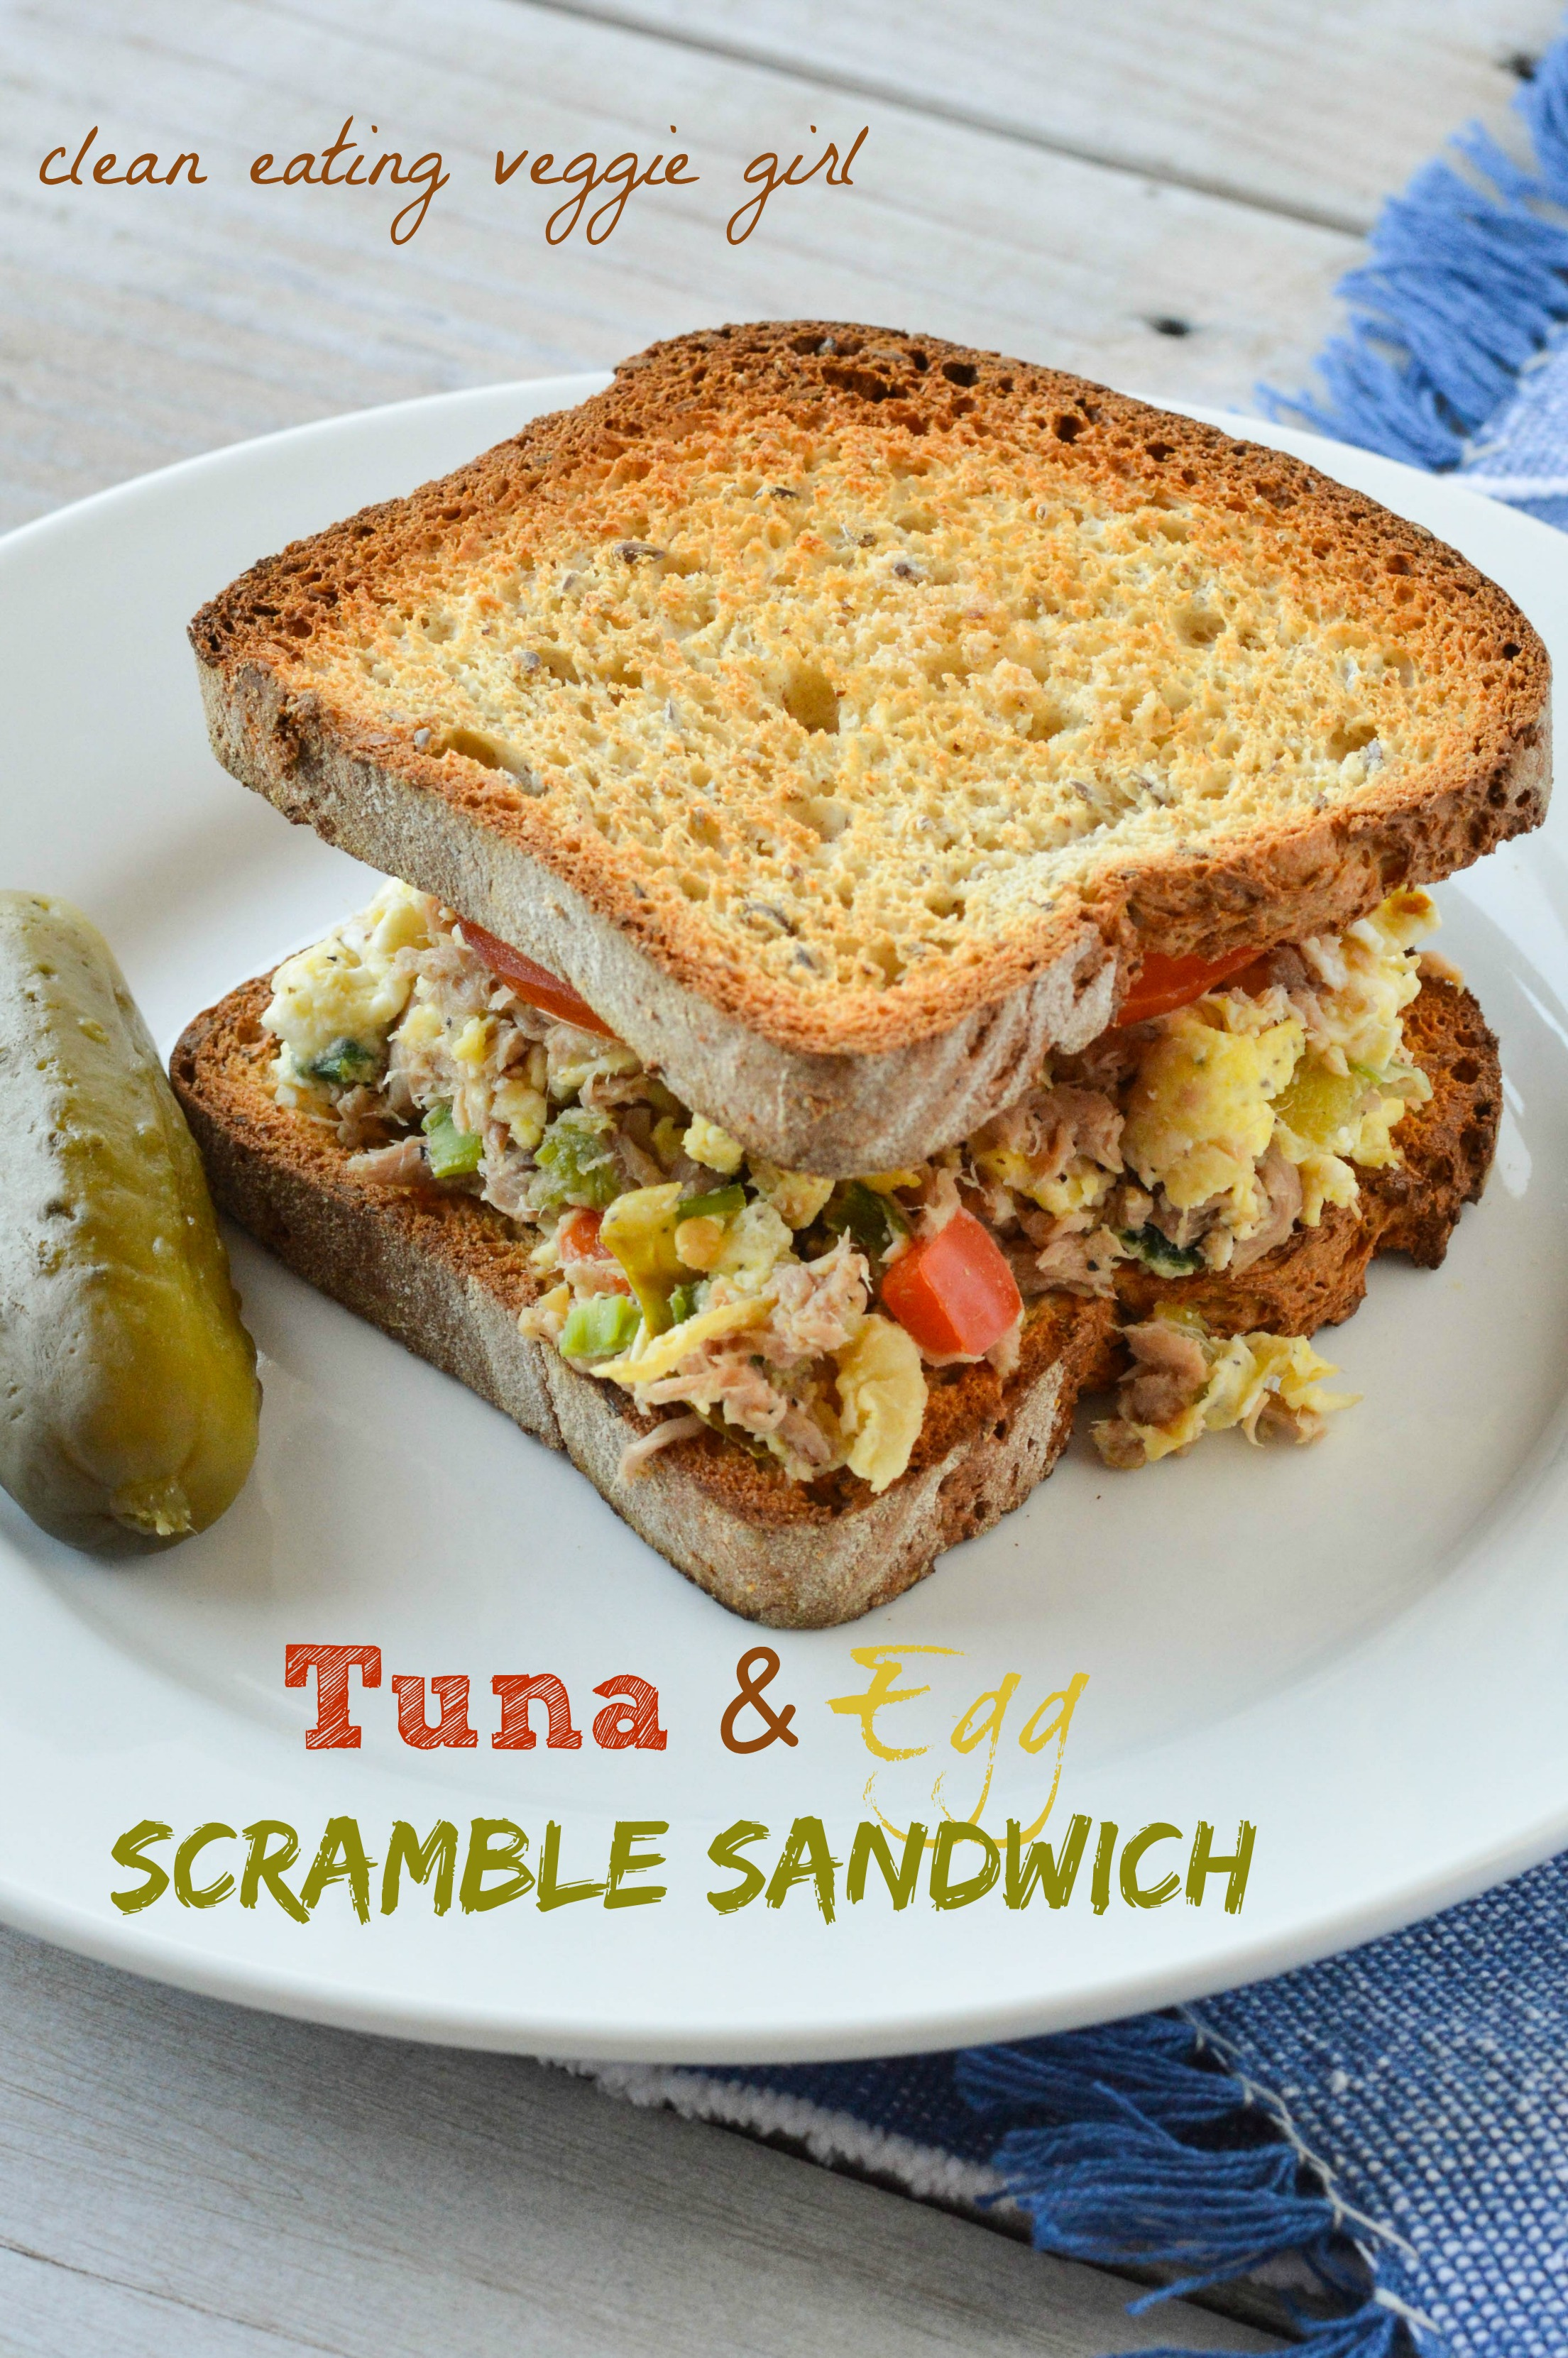 Tuna and egg scramble sandwich for Tuna fish salad recipe with egg